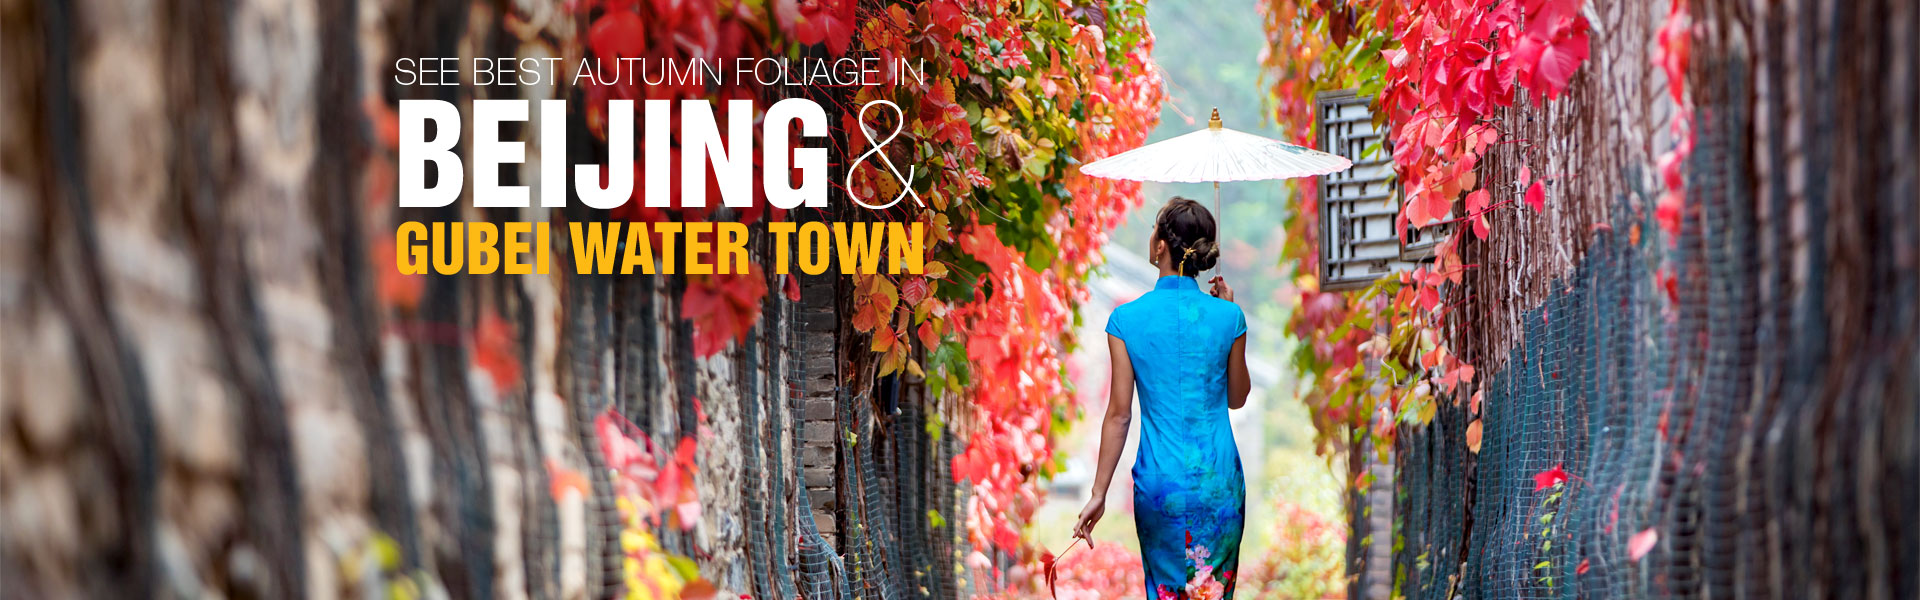 See Best Autumn Foliage in Beijing & Gubei Water Town for CTA